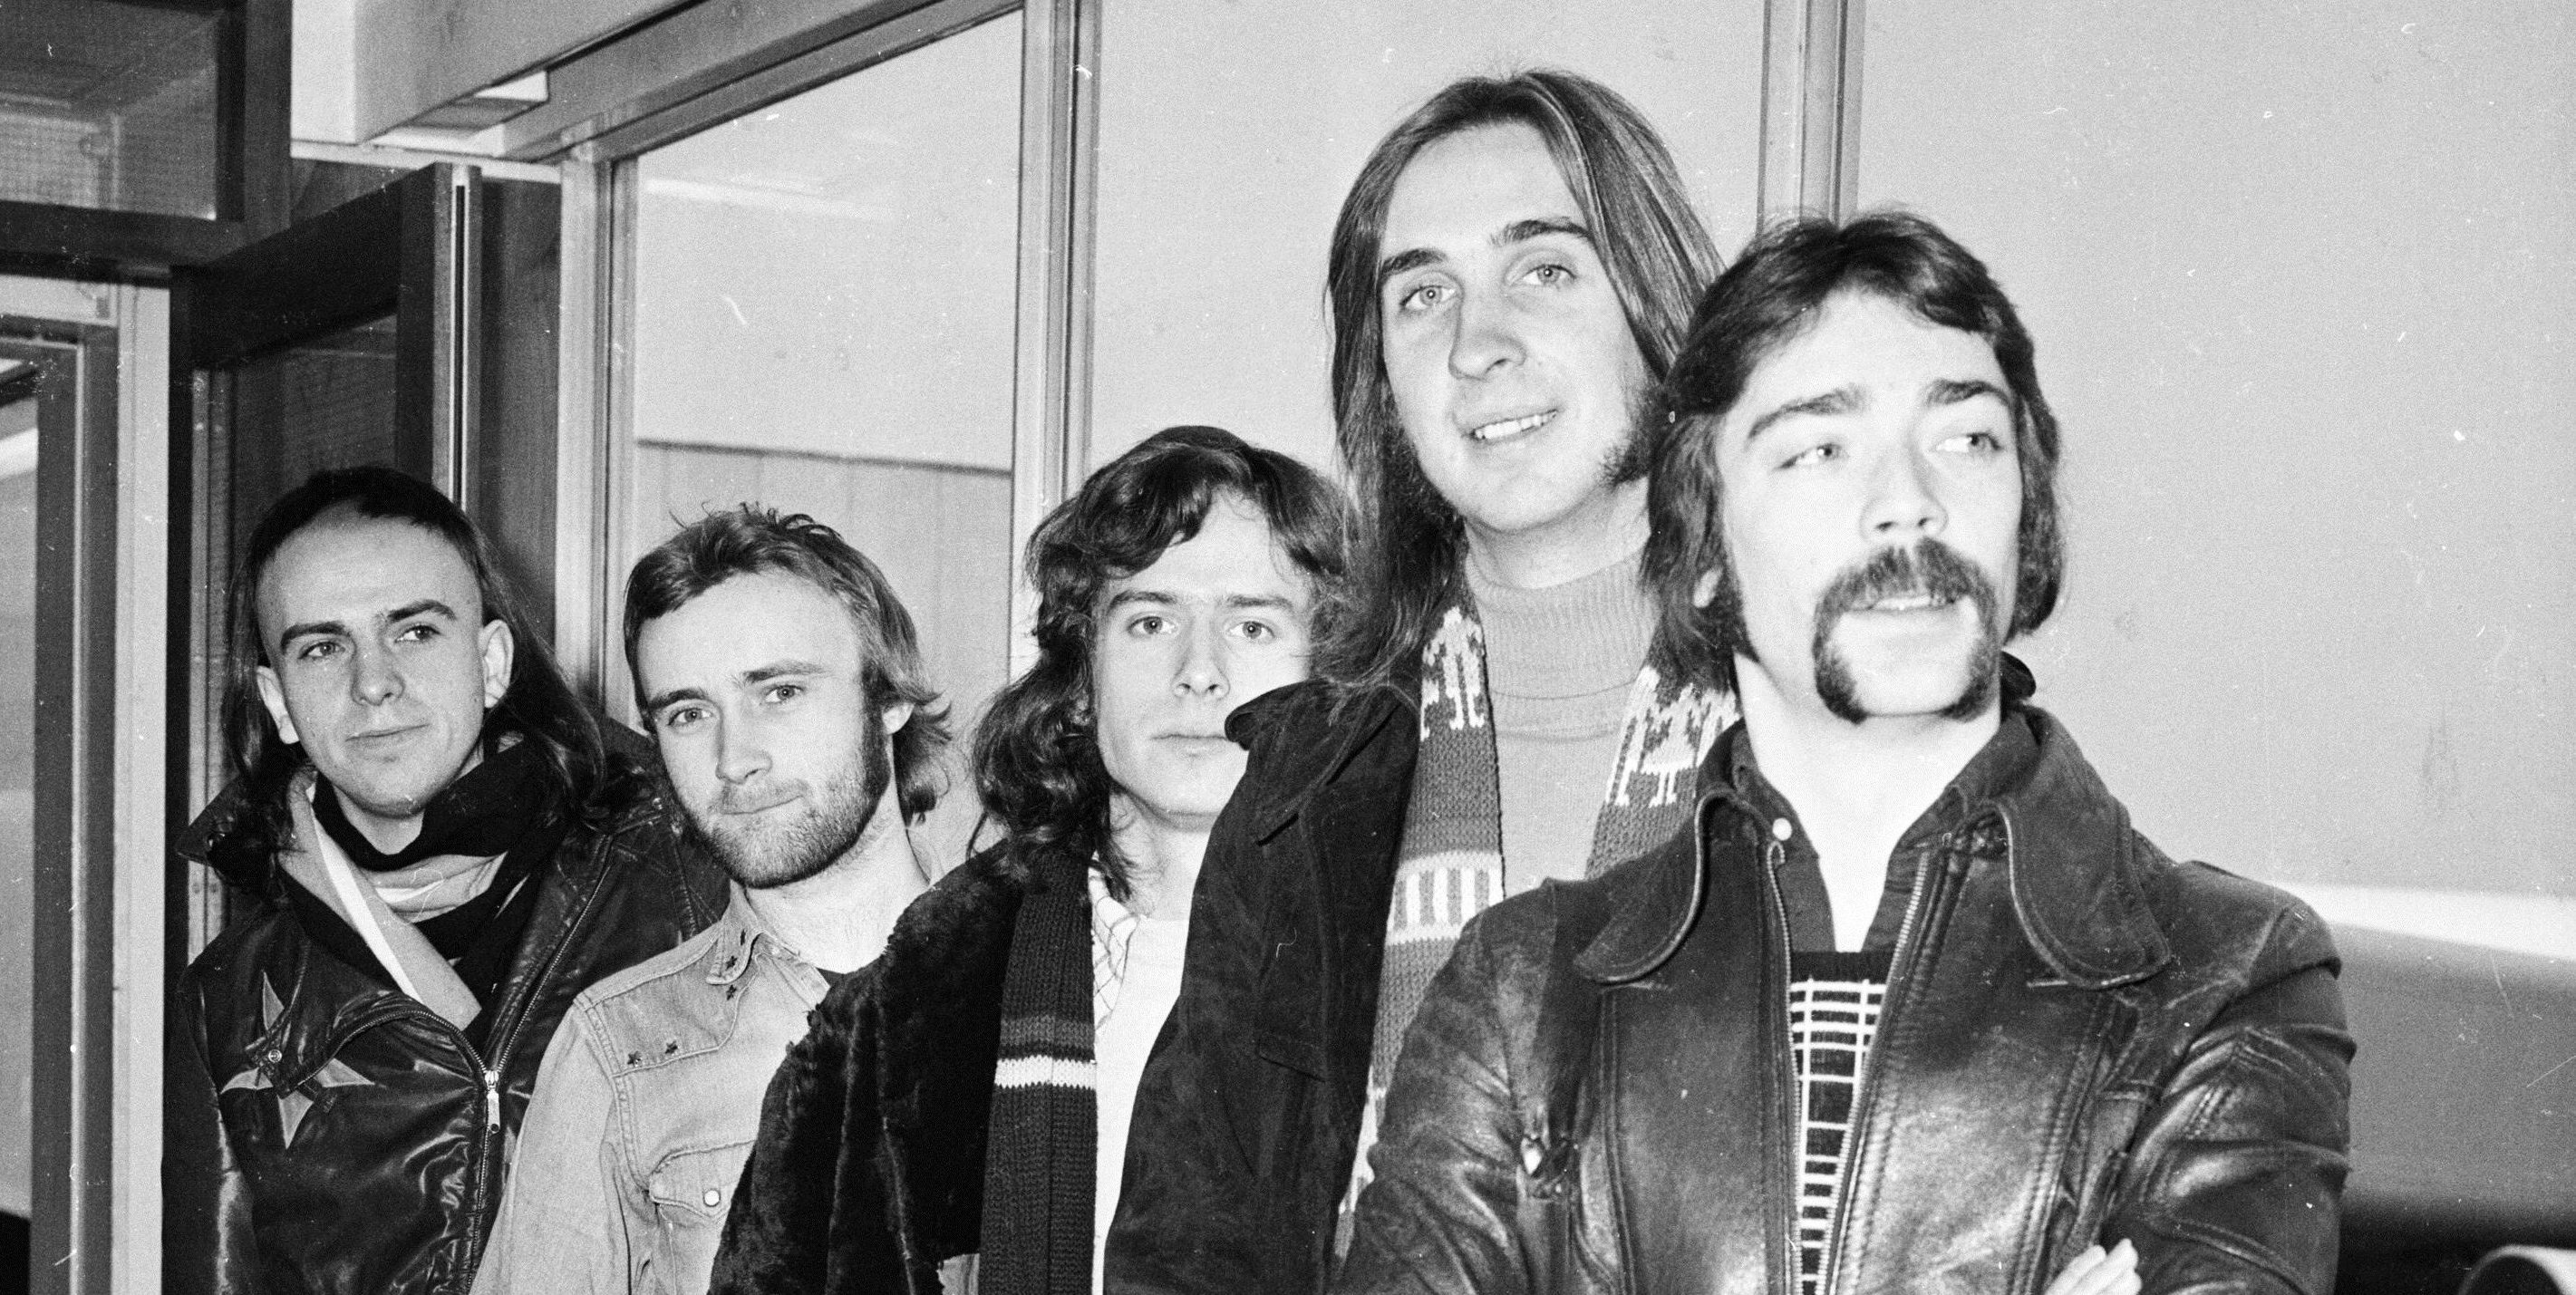 Genesis, (from left) Peter Gabriel, Phil Collins, Tony Banks, Mike Rutherford and Steve Hackett at London Airport in 1974.